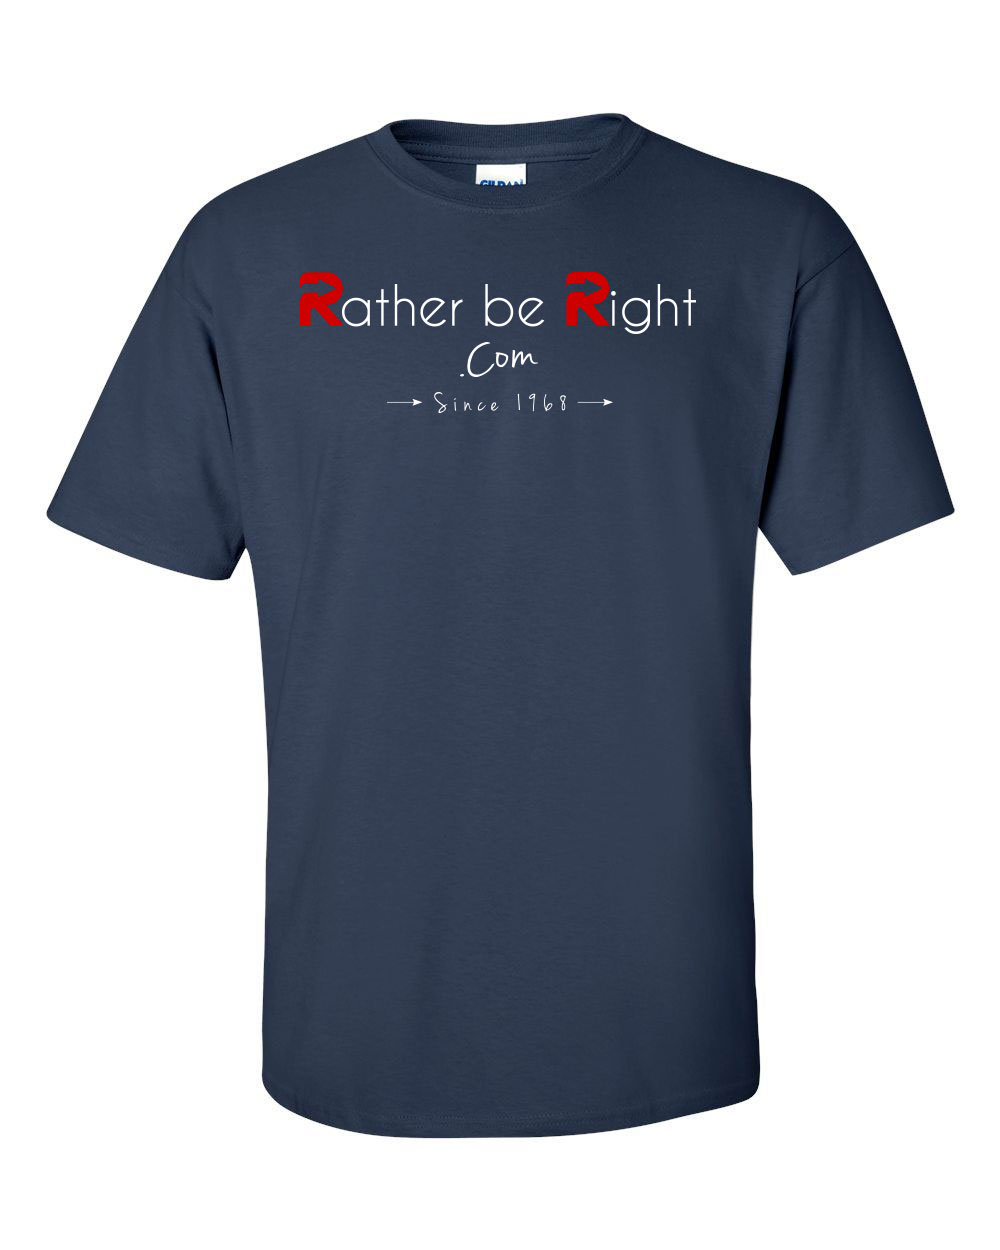 Rather be Right T-Shirts will be available soon!